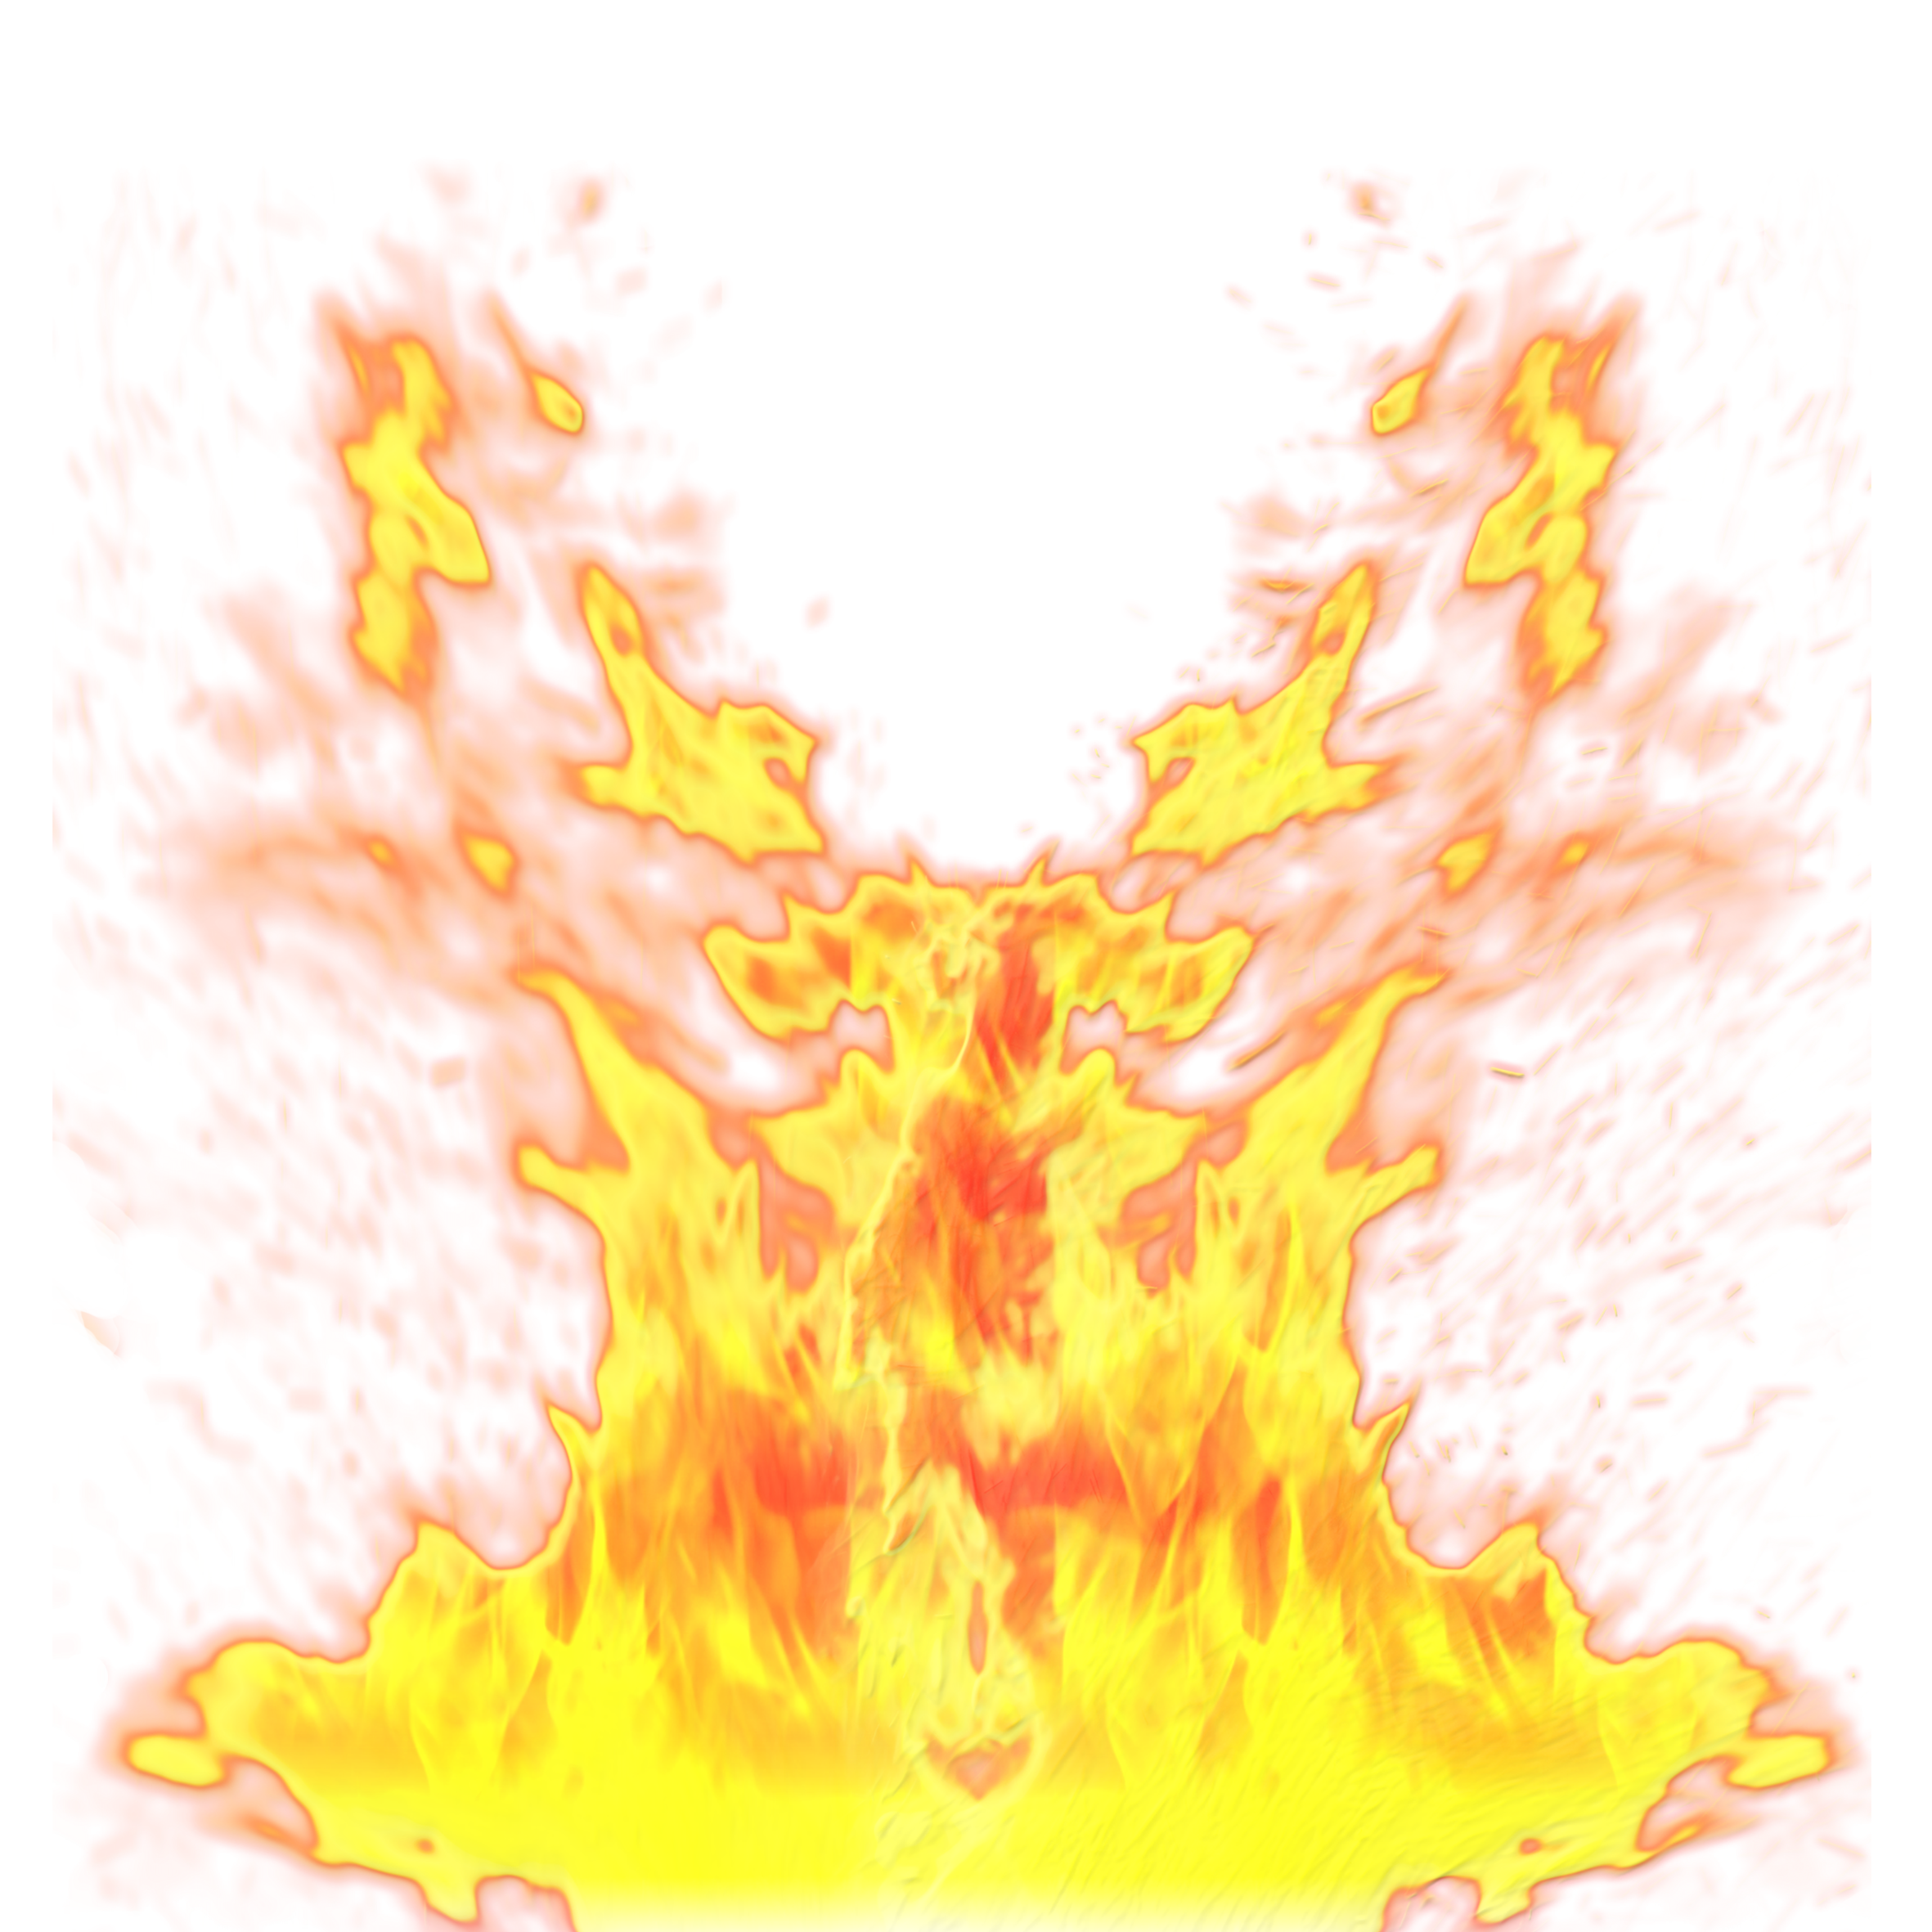 High-quality Fire Cliparts For Free! image #687